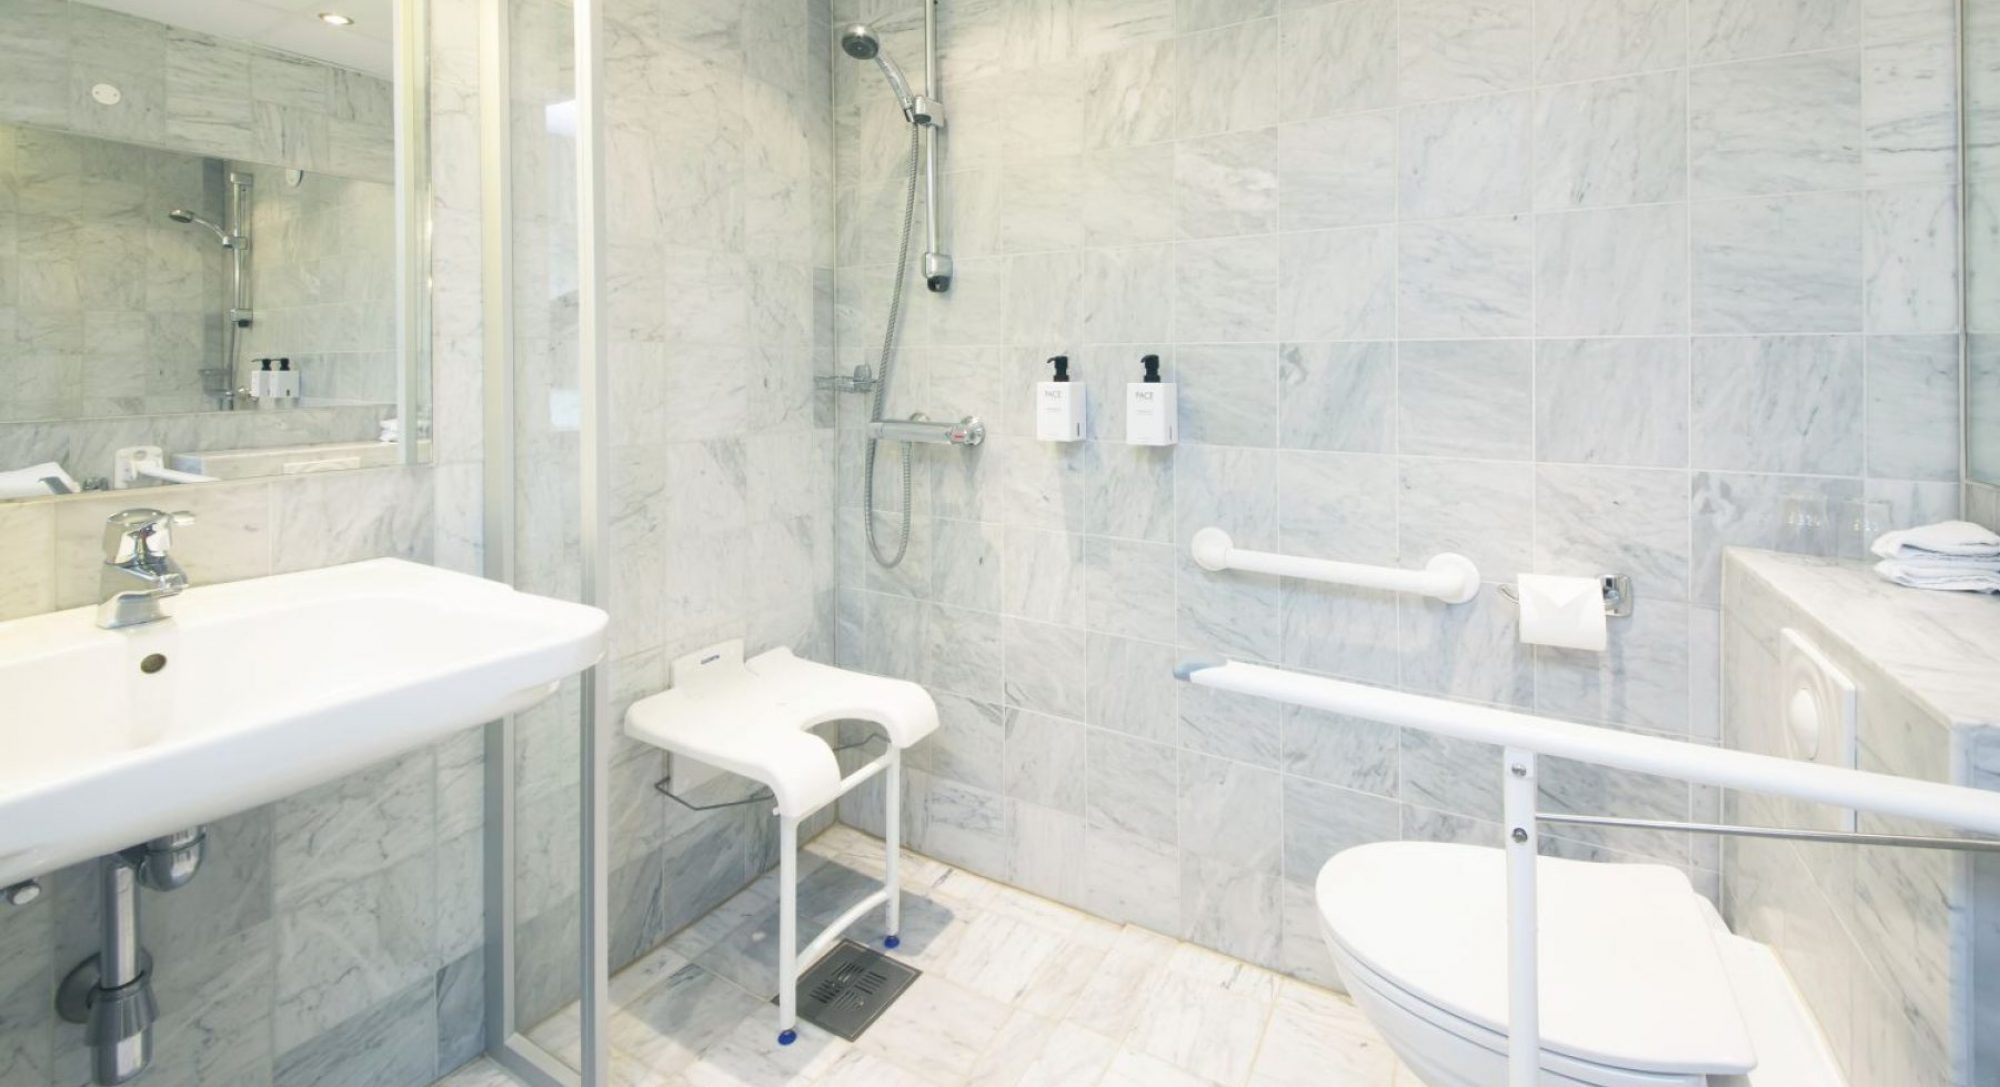 Design Ideas For Handicap Bathrooms - Windows - Heating - Boilers - Solutions